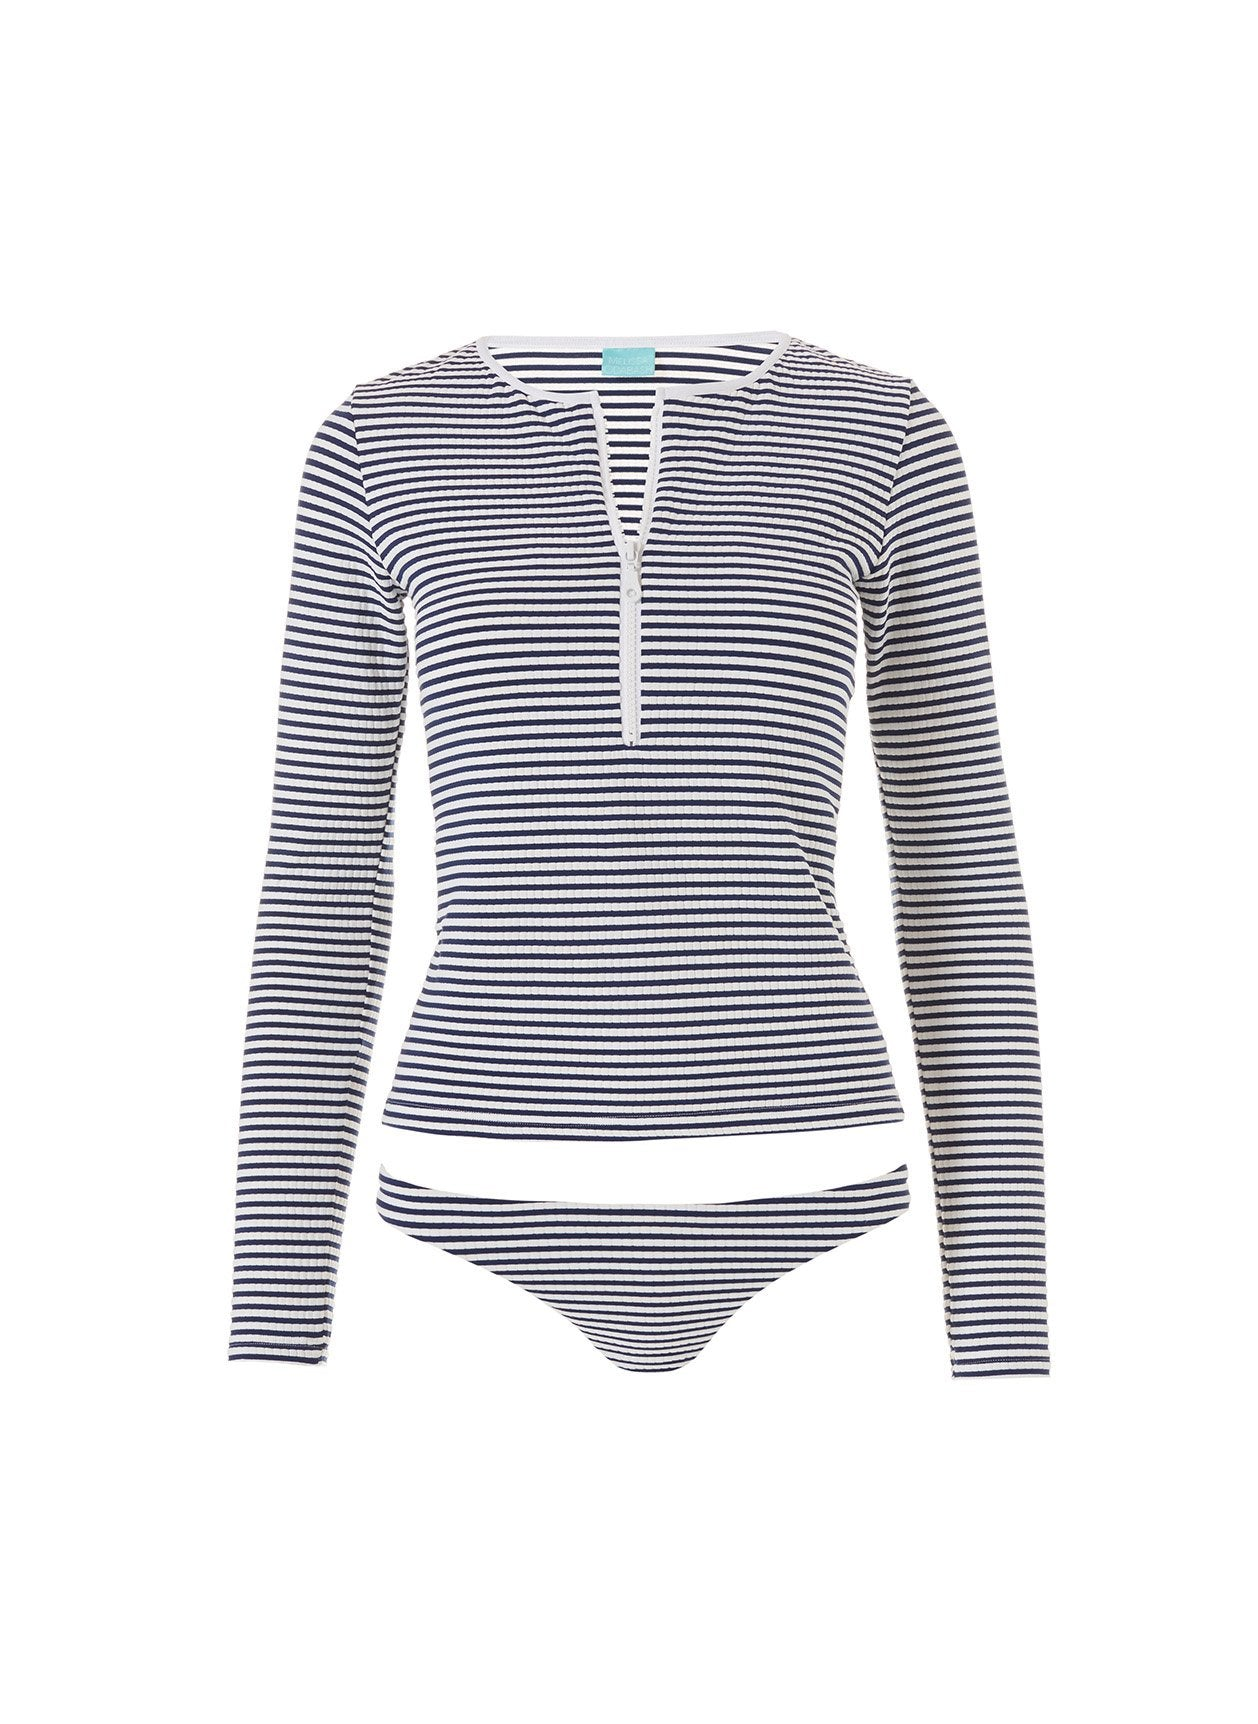 Cali Nautical Navy Long Sleeve Rash Vest Bikini 2020